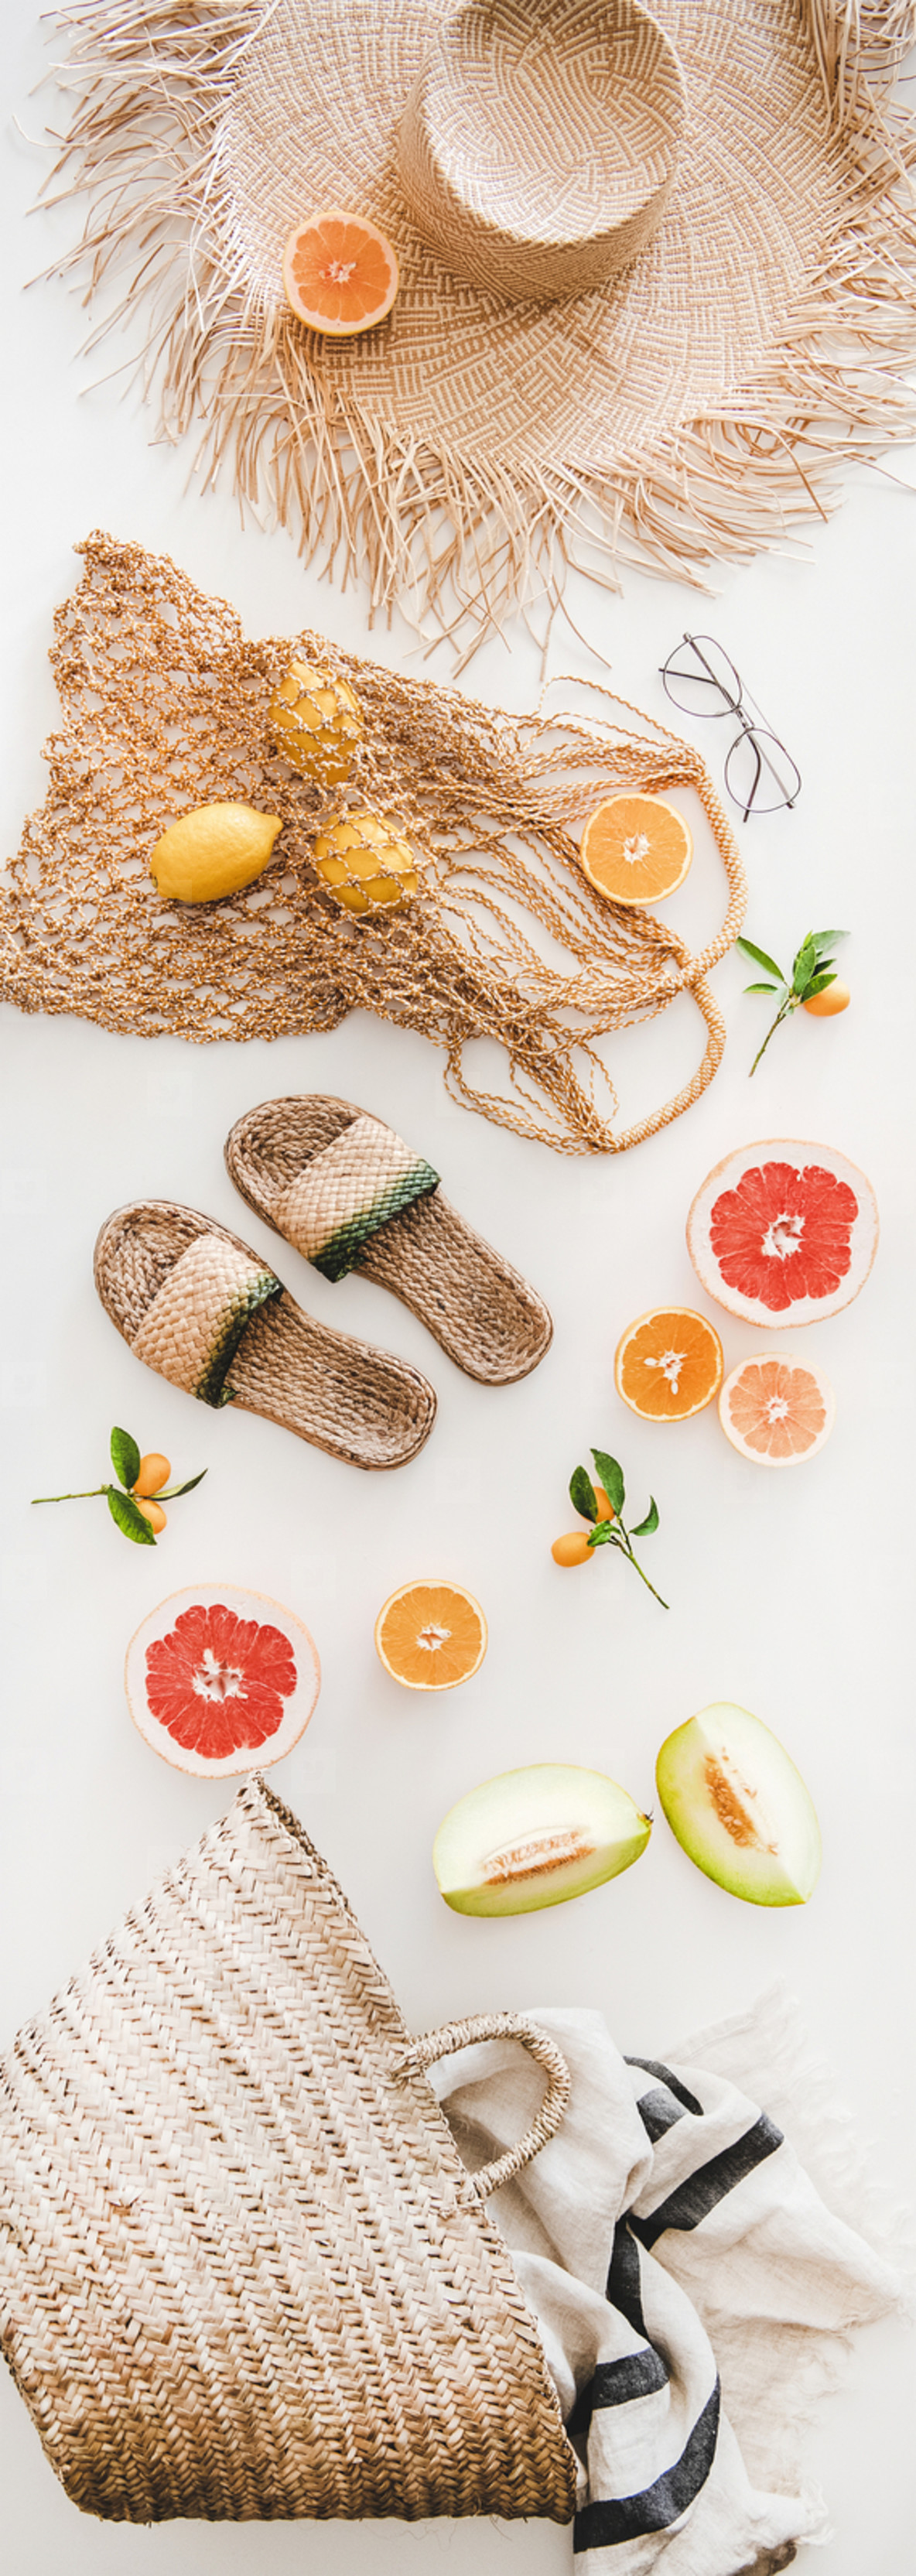 Summer layout with feminine accessories and fresh fruits  vertical composition